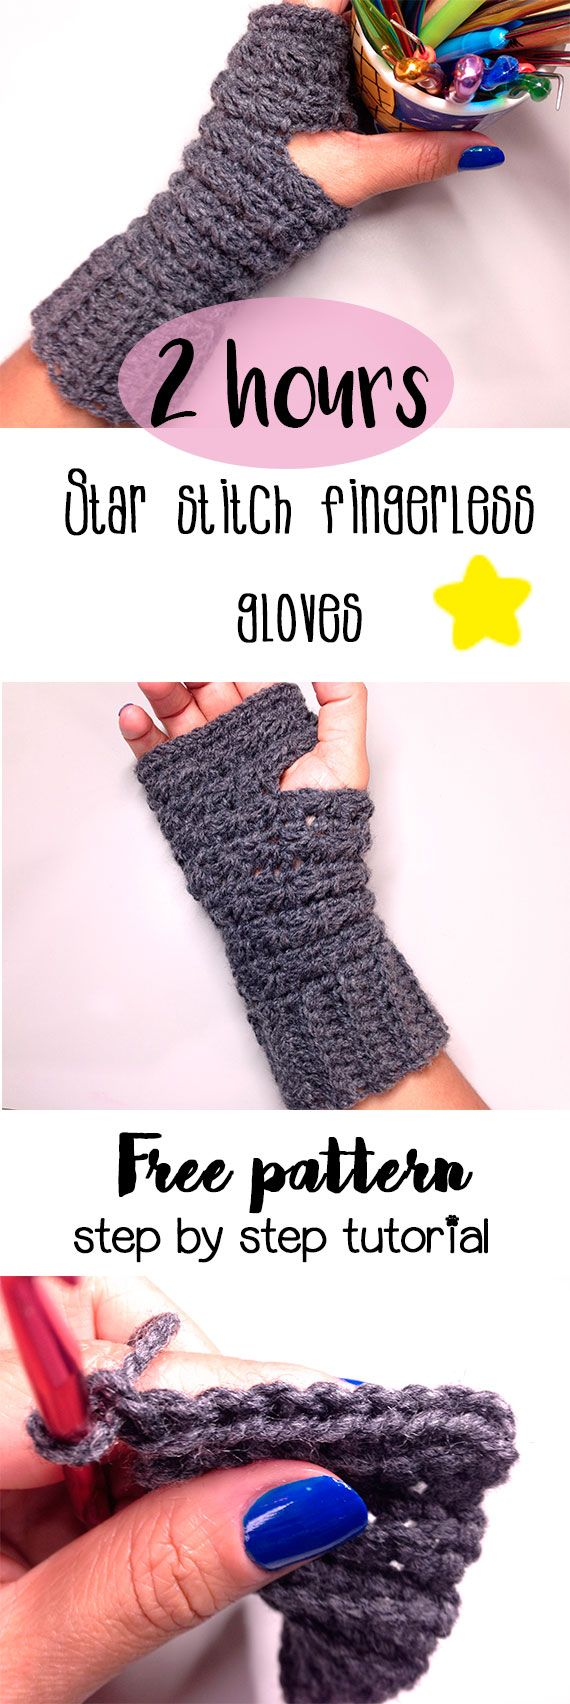 Star Stitch fingerless gloves Free Pattern! | Sewing Projects ...